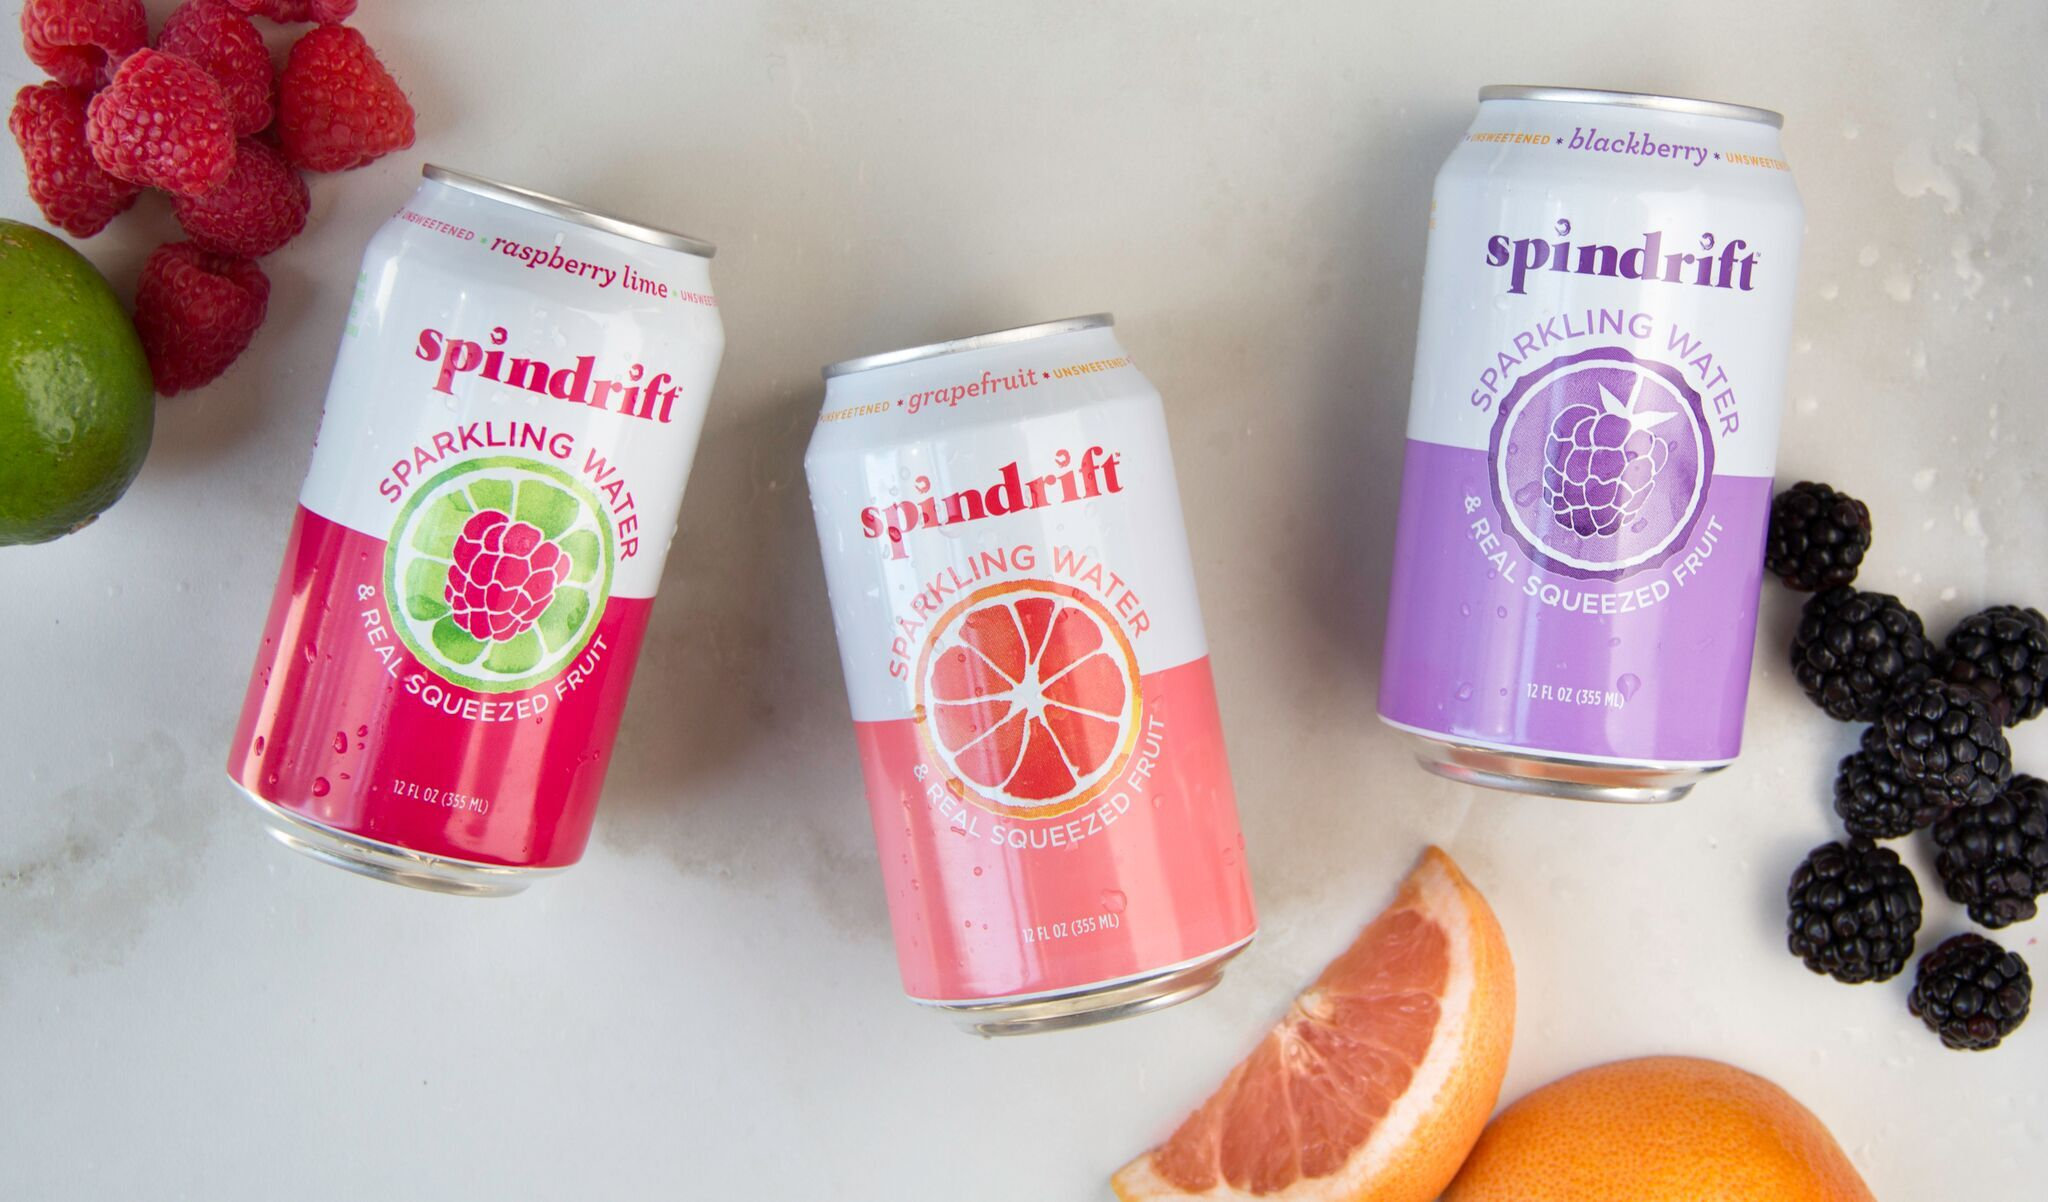 America's First Sparkling Beverage Made With Squeezed Friut